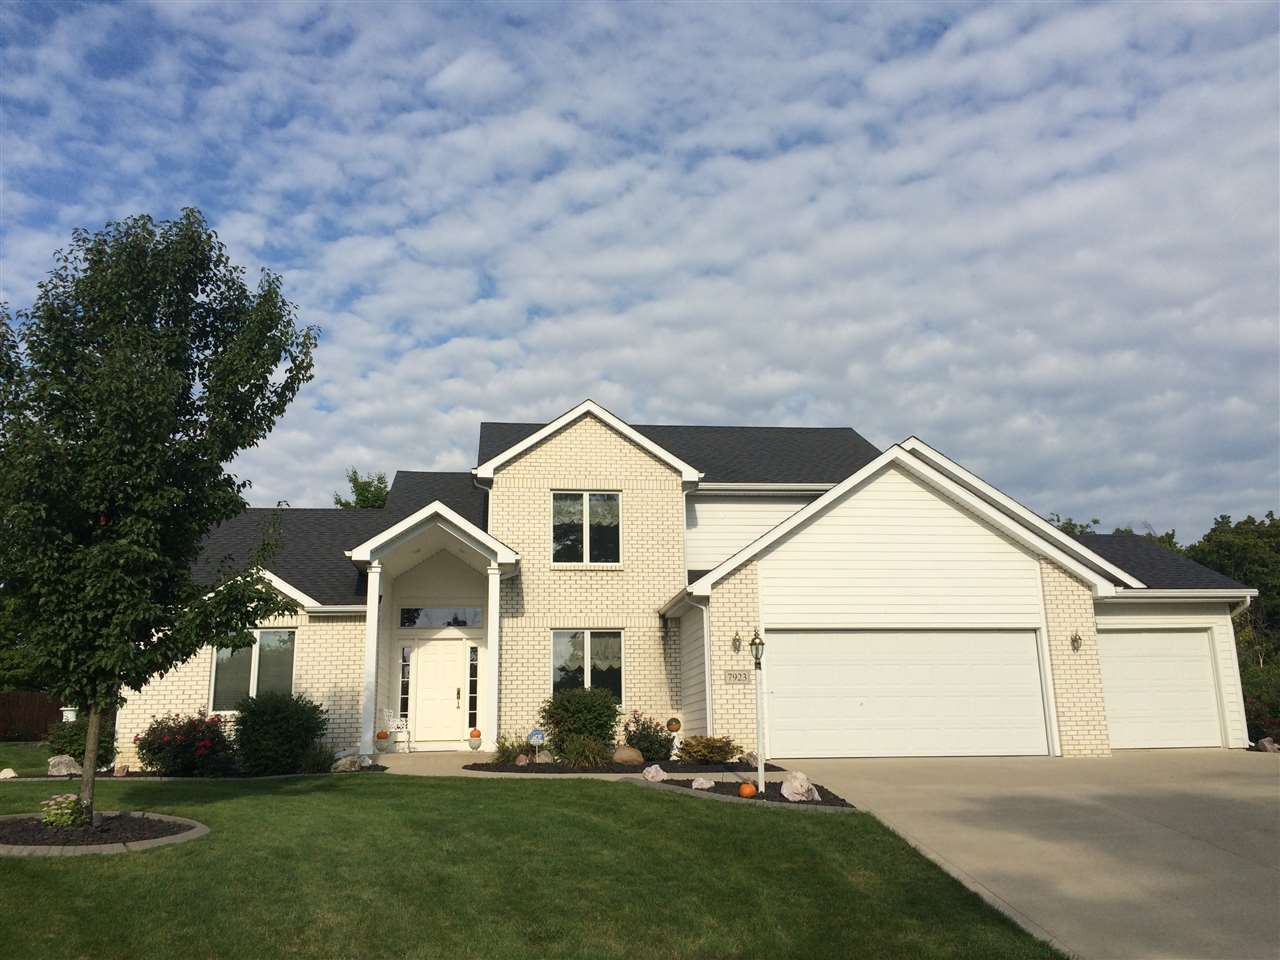 7923 EMERALD CANYON Cove, Fort Wayne, IN 46825